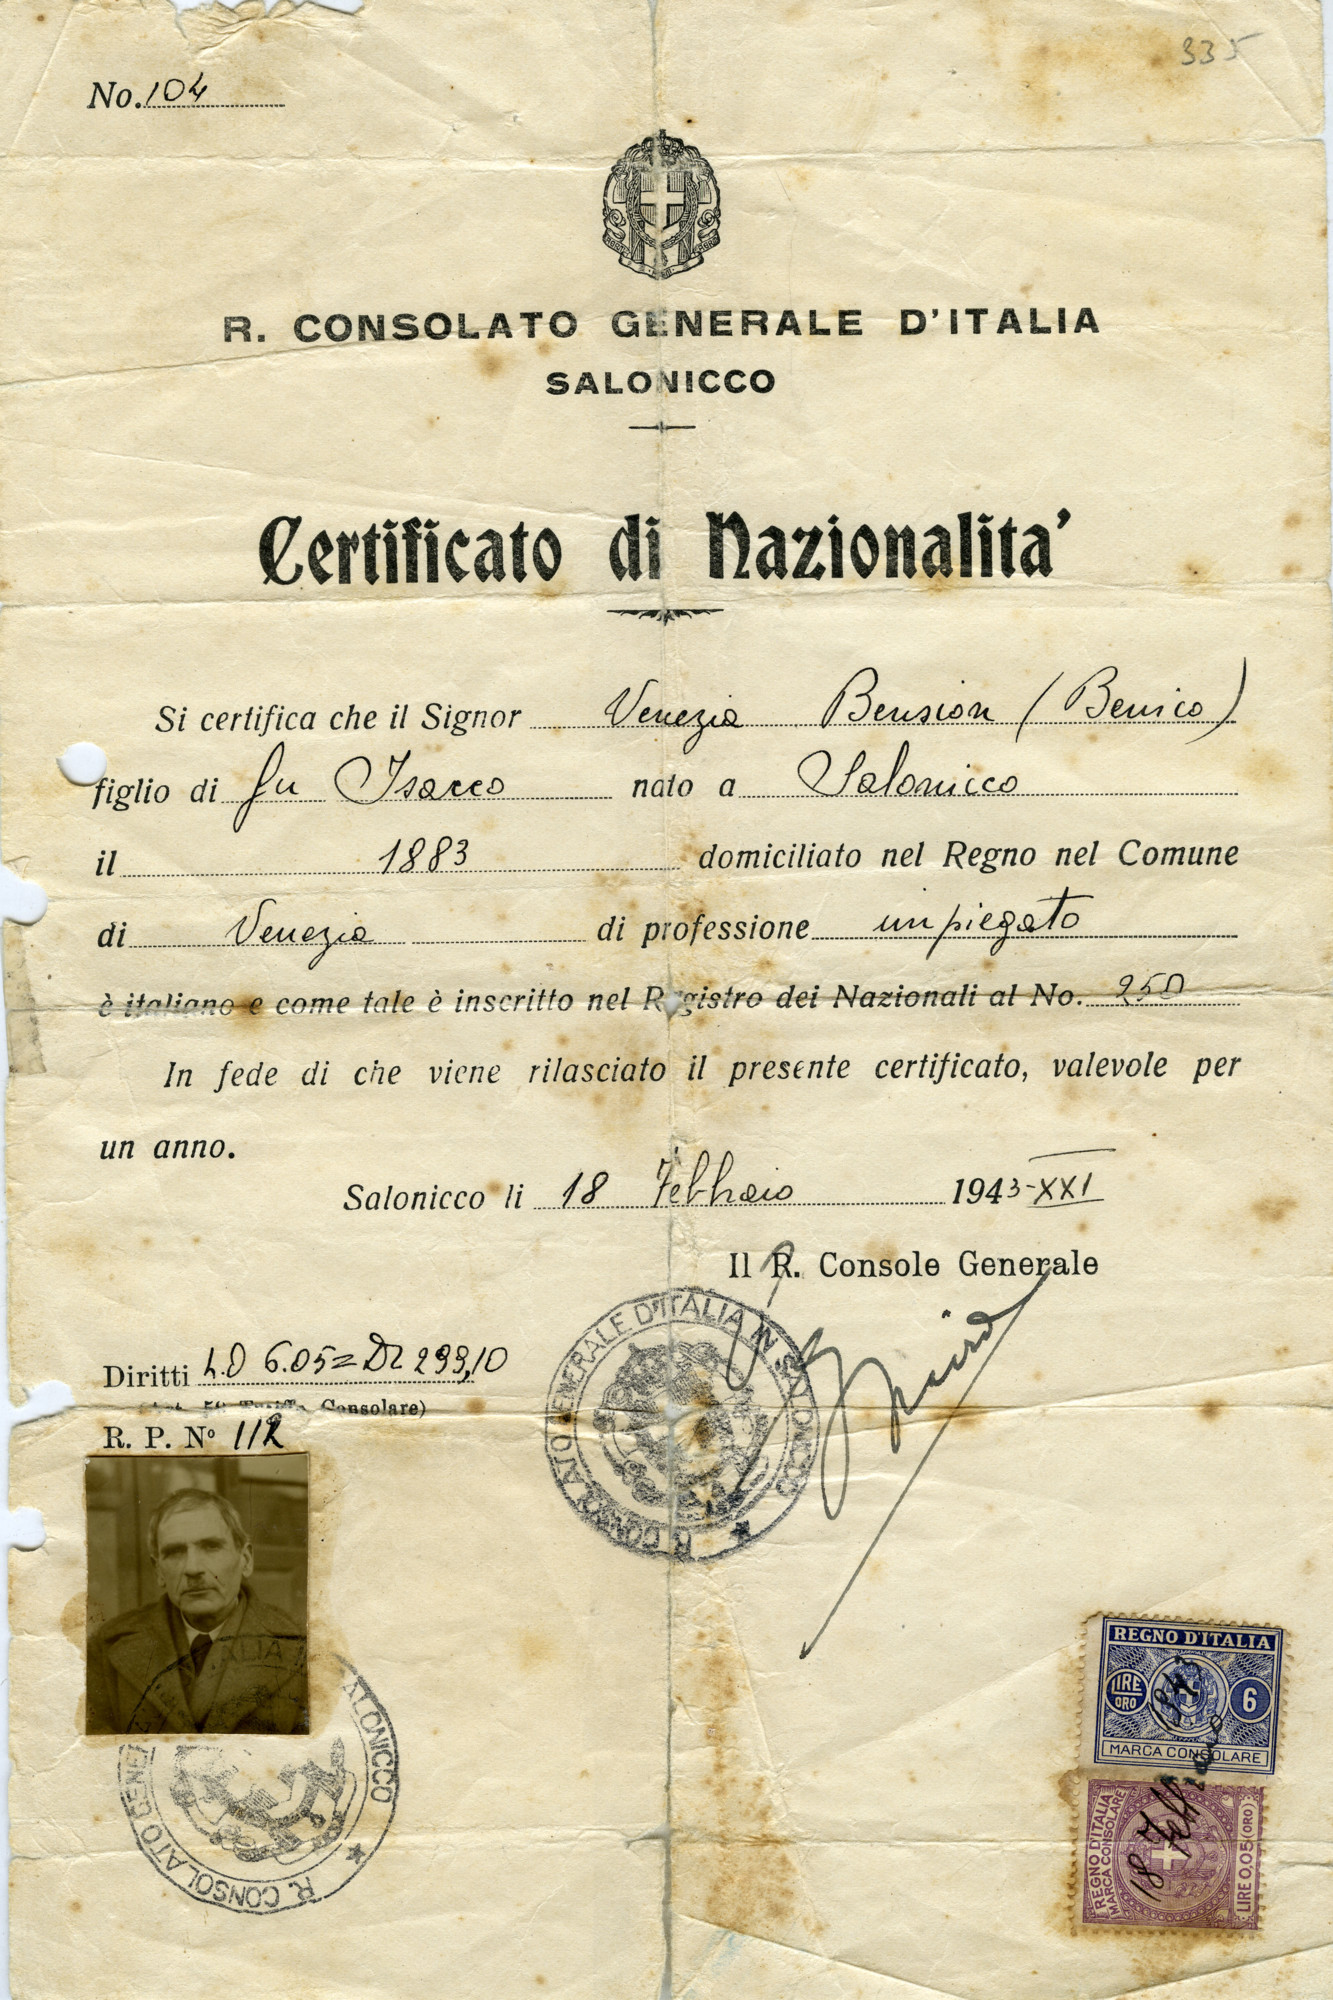 Certificate of Italian nationality for Benzion Venezia.